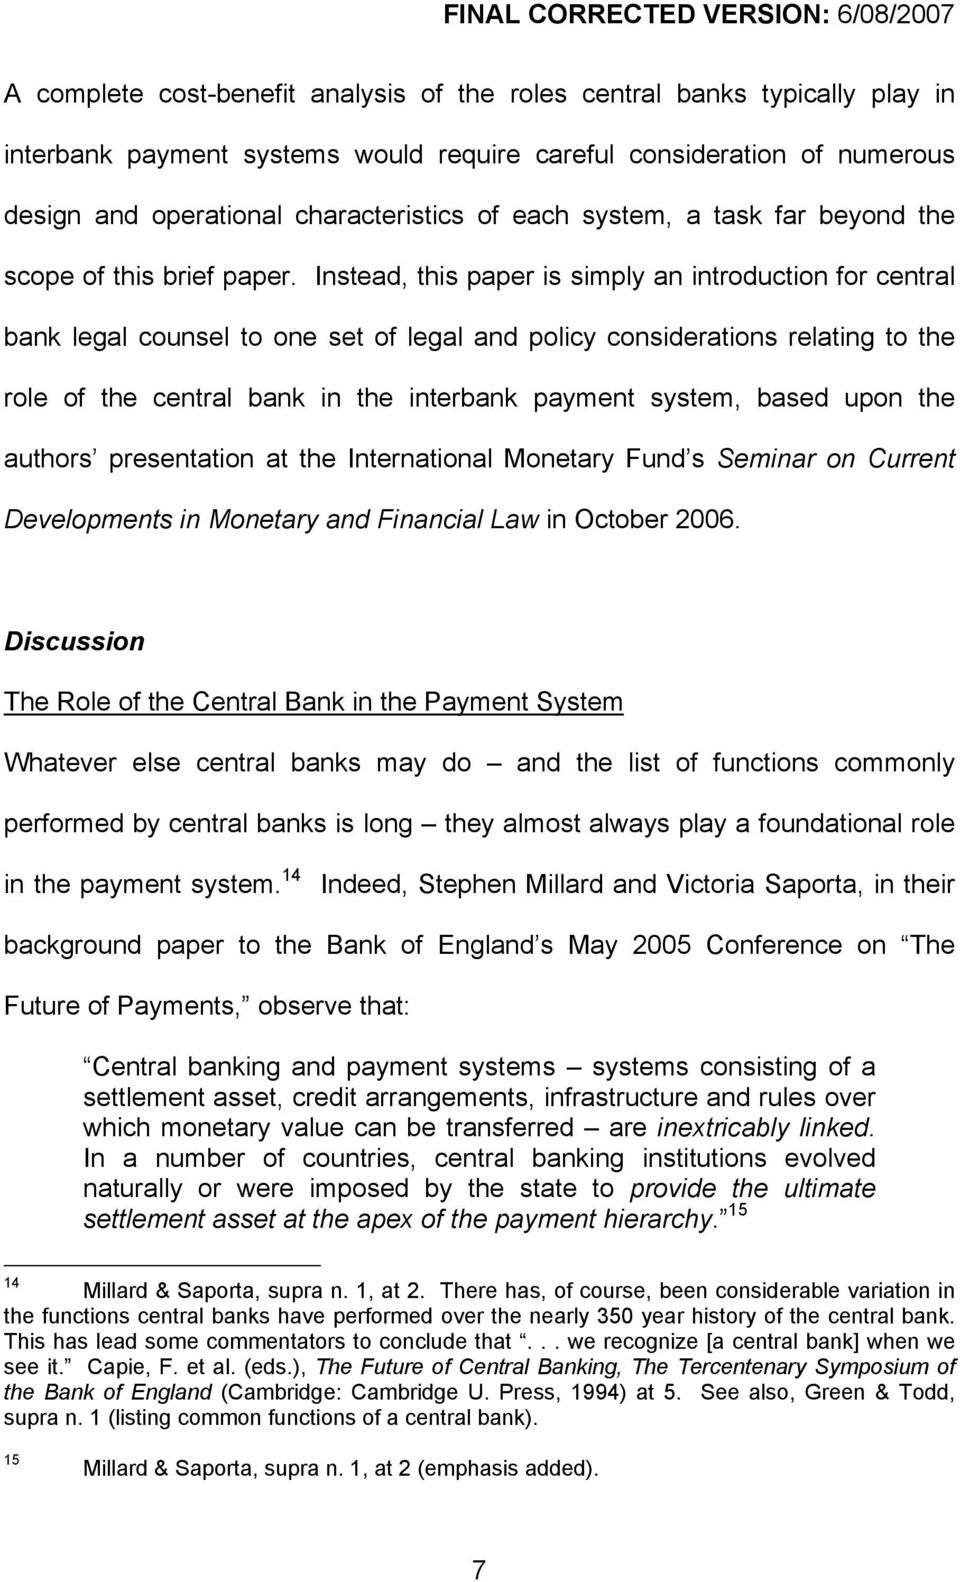 Instead, this paper is simply an introduction for central bank legal counsel to one set of legal and policy considerations relating to the role of the central bank in the interbank payment system,